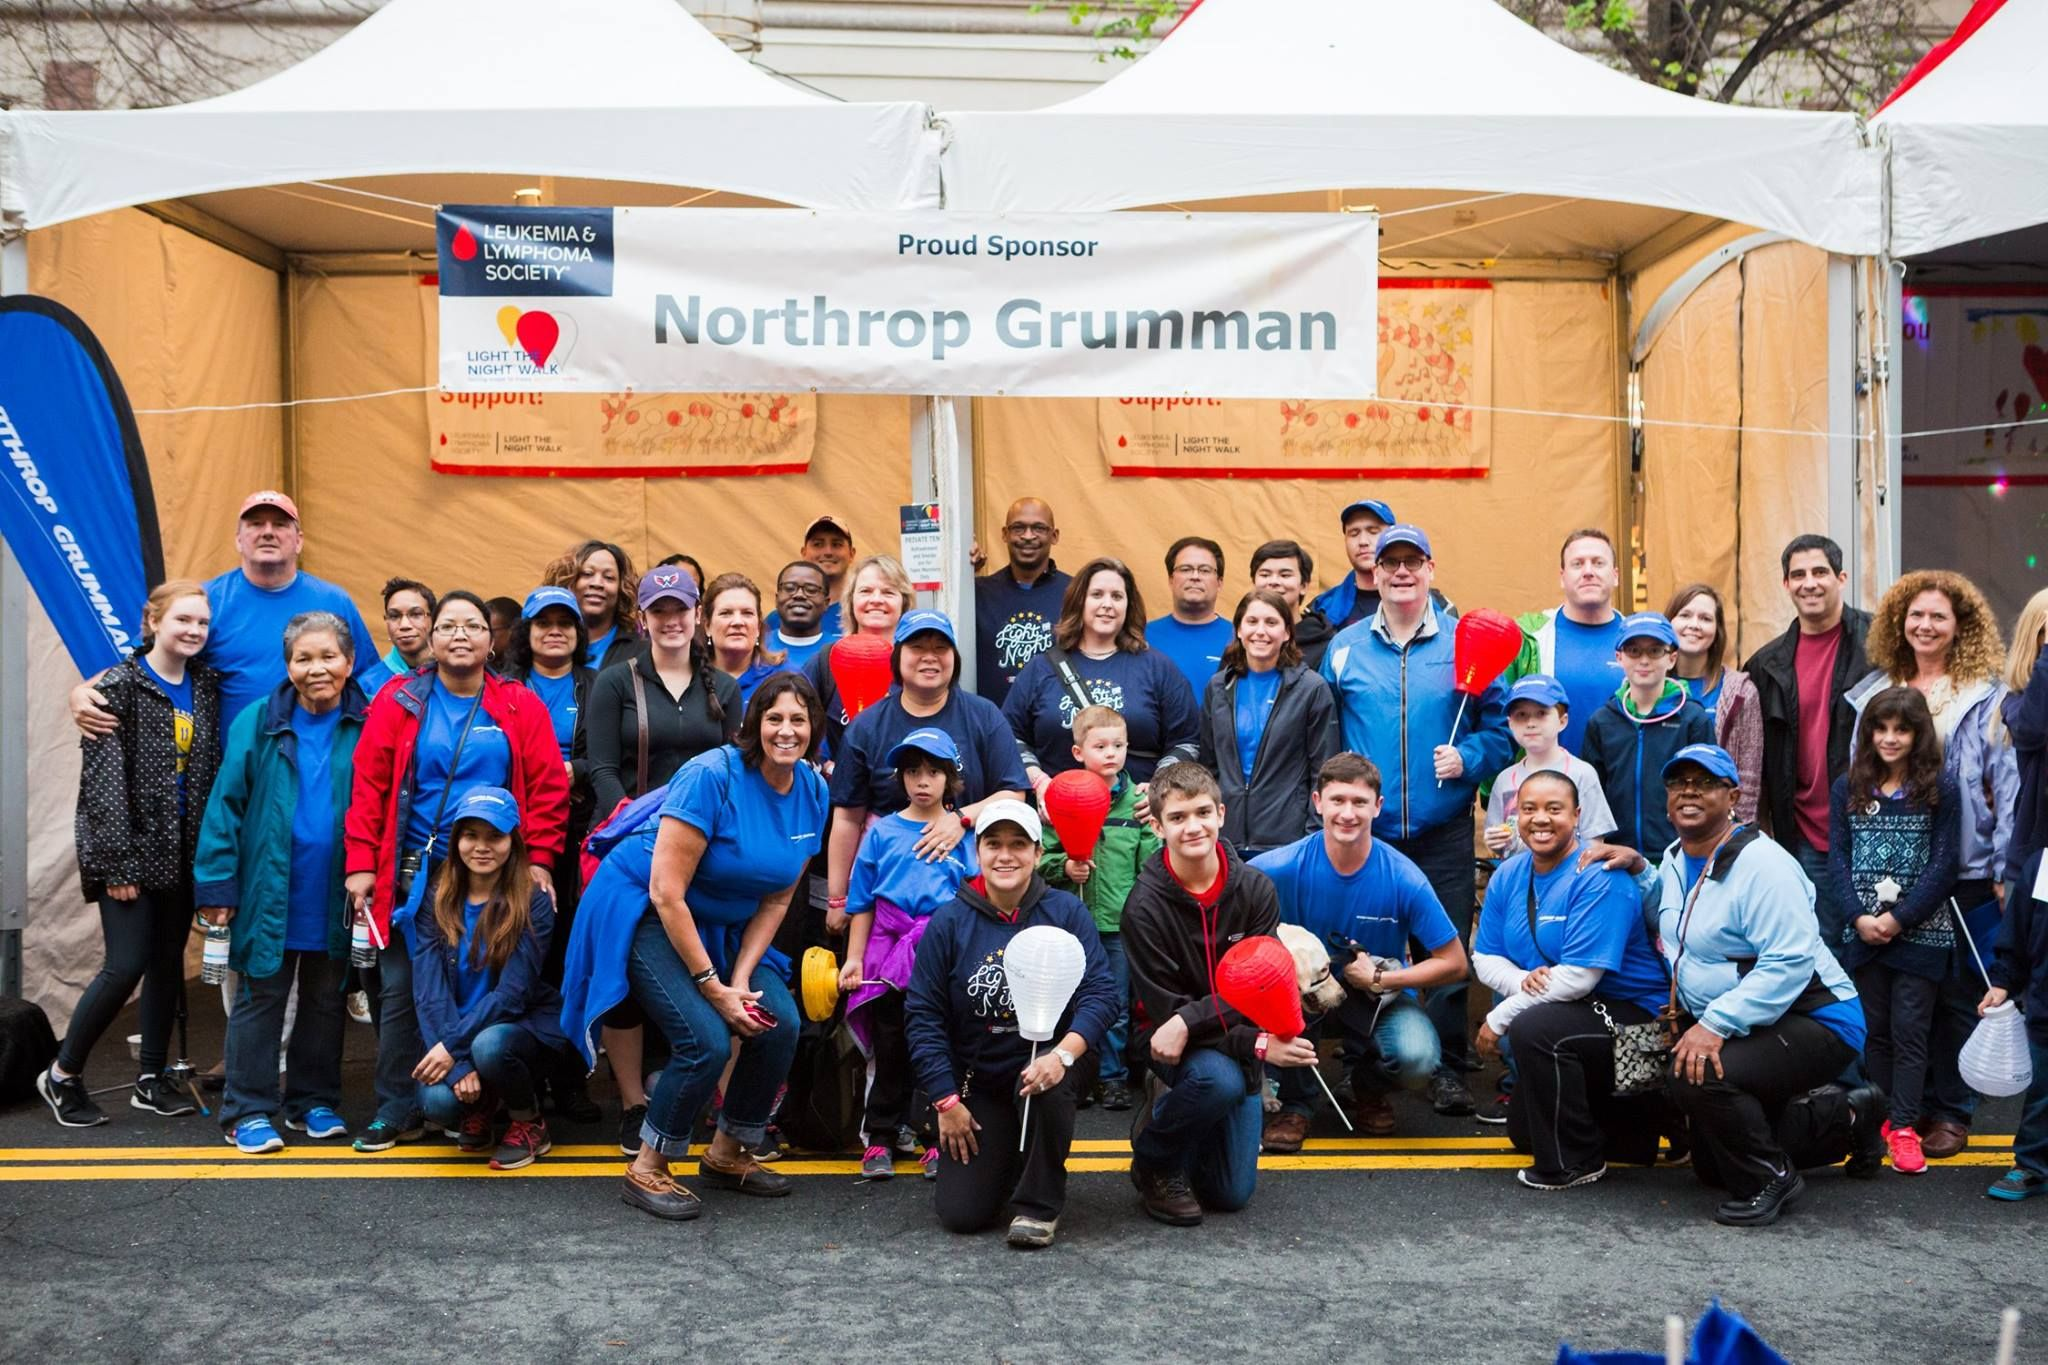 Northrop Grumman, Top Corporate Team Northern Virginia